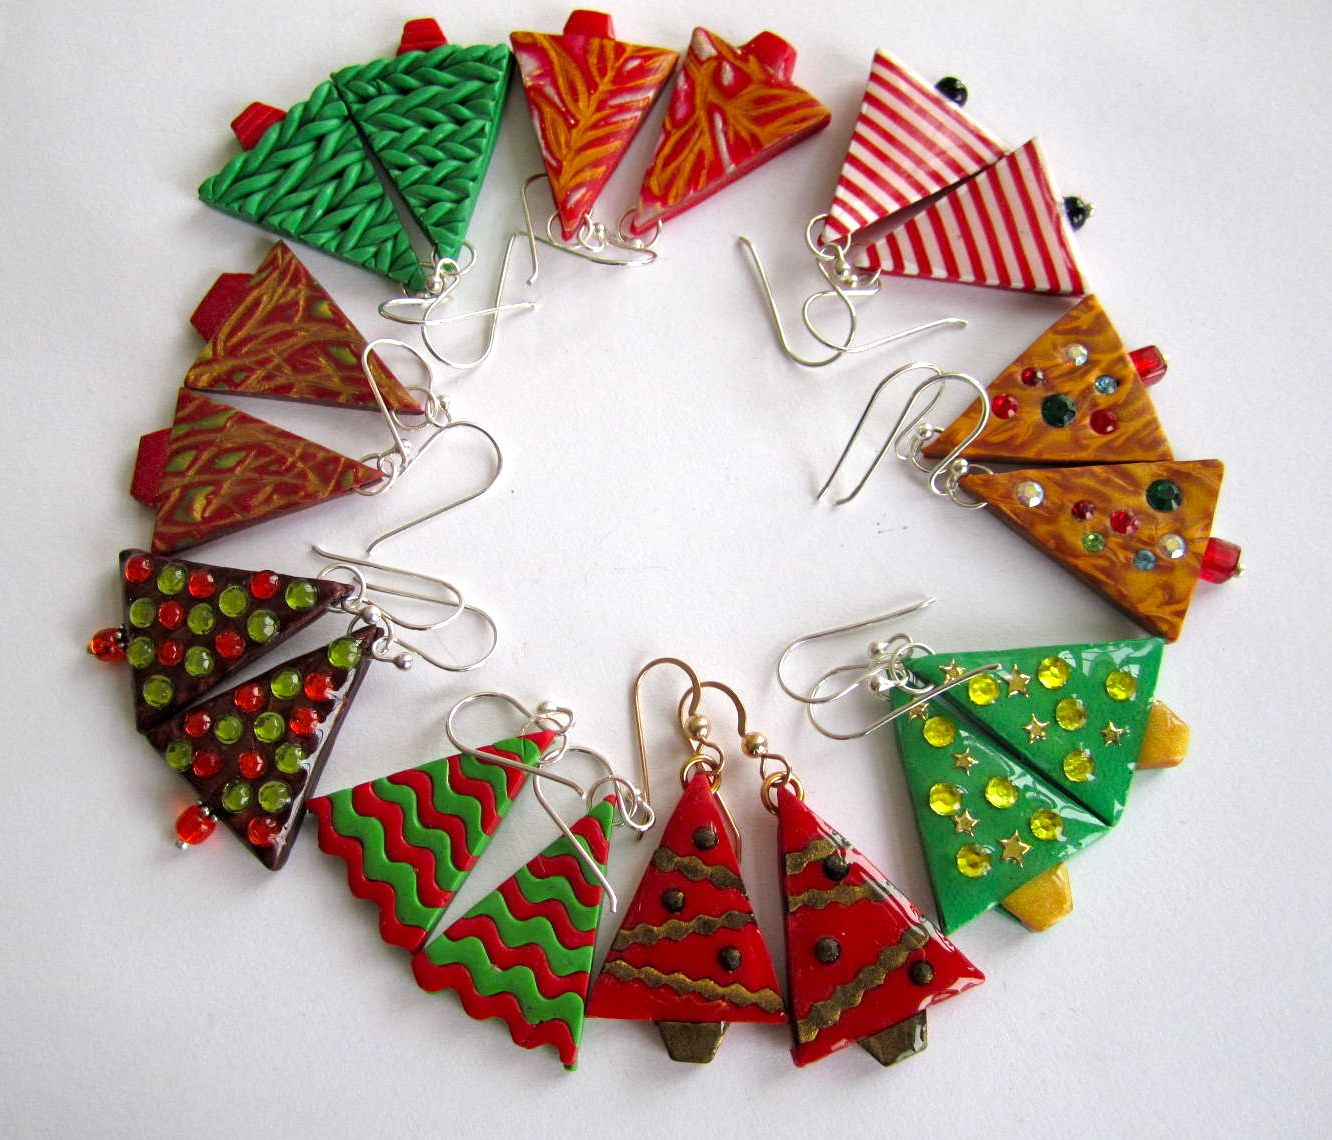 Fimo Clay Jewelry Instructions